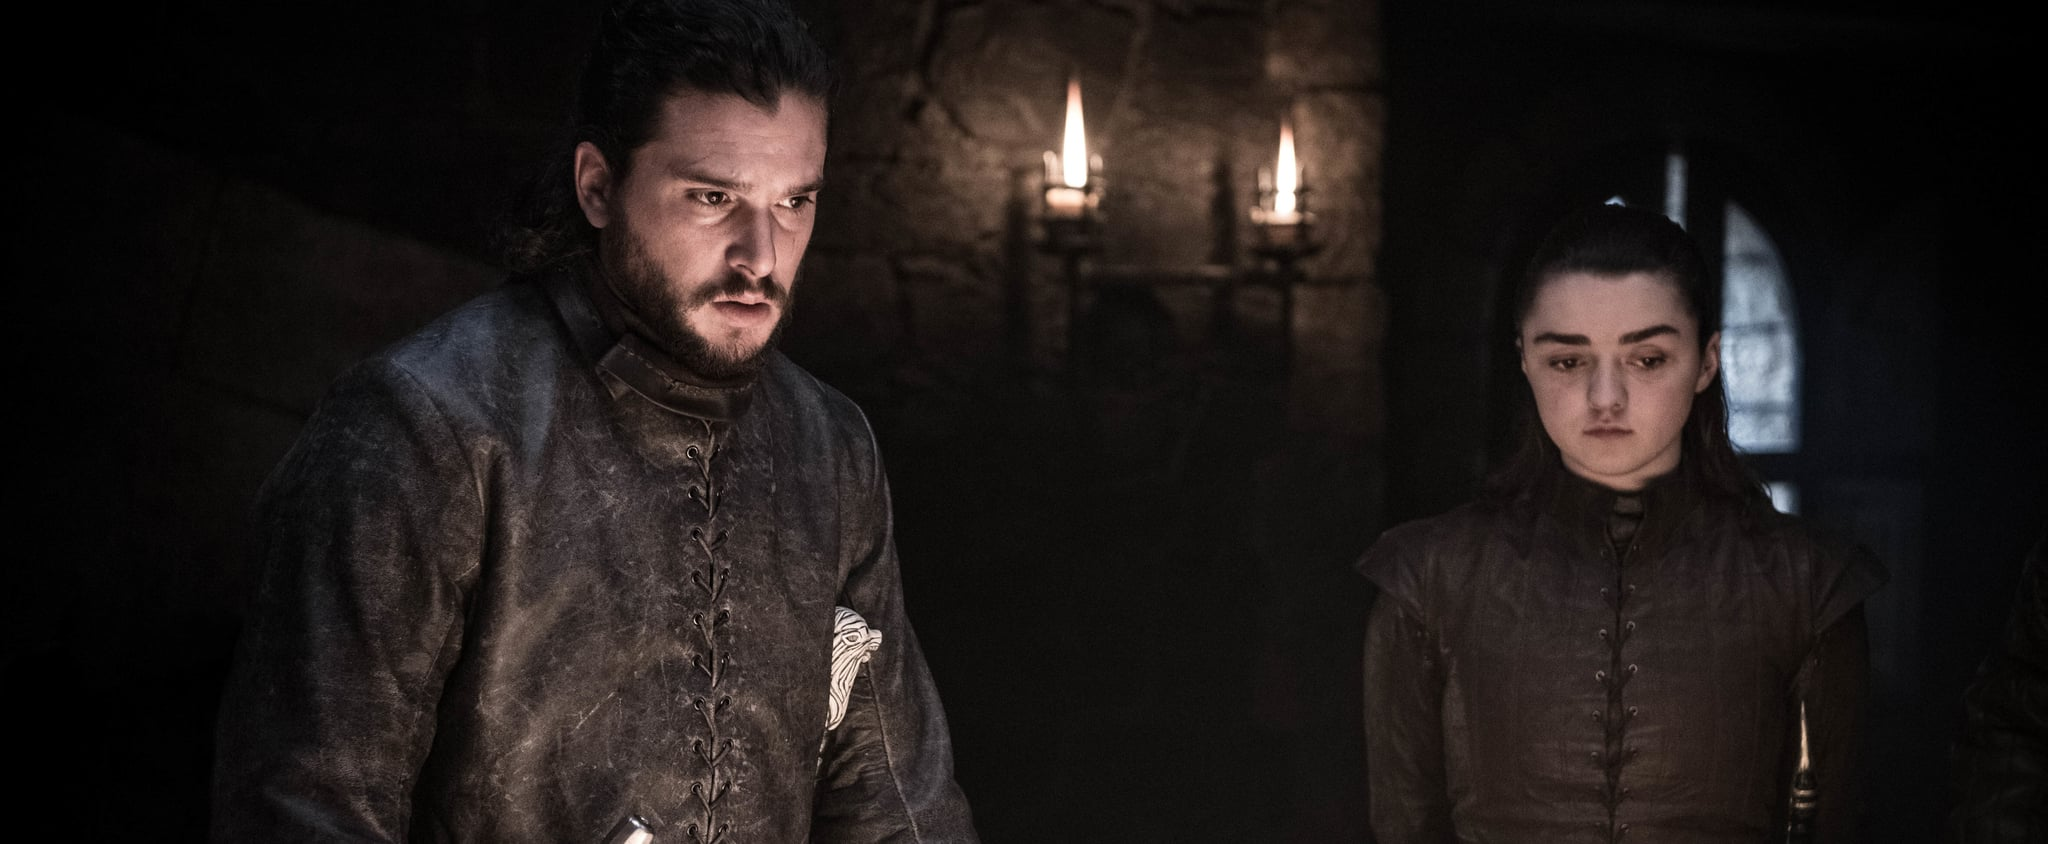 Game of Thrones Season 8 Episode 2 Photos